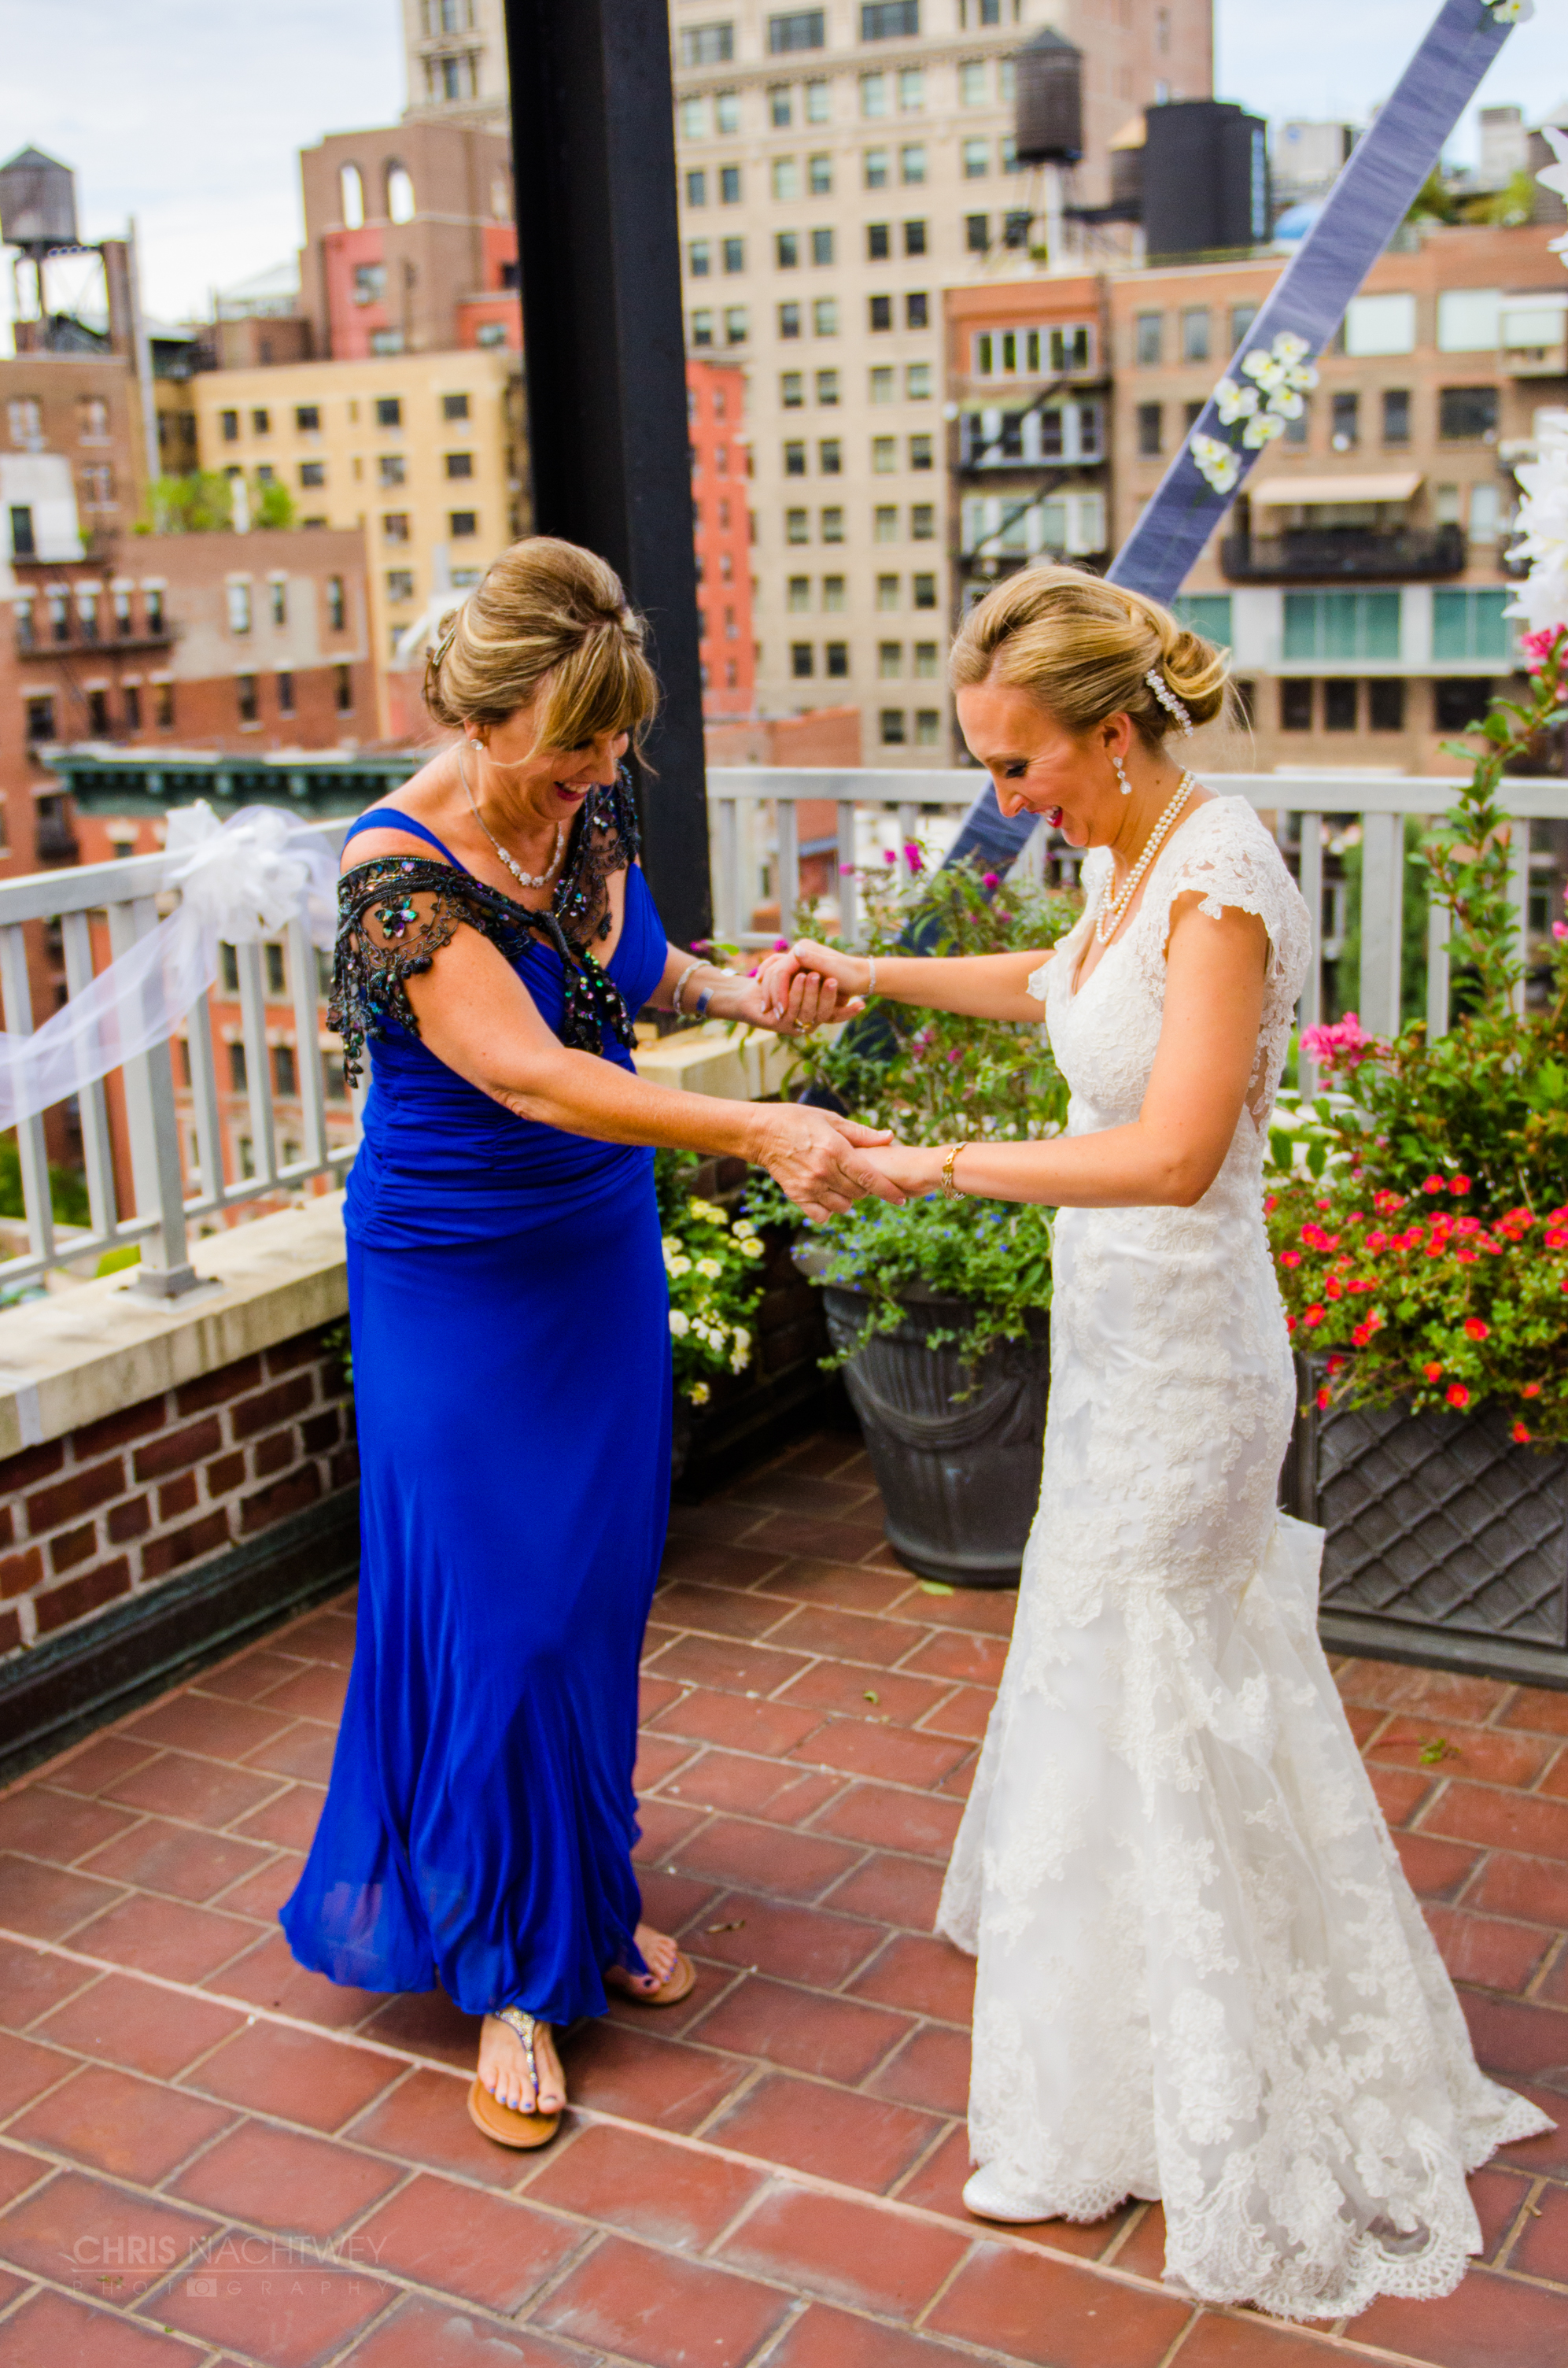 nyc-wedding-photography-chris-nachtwey.jpg